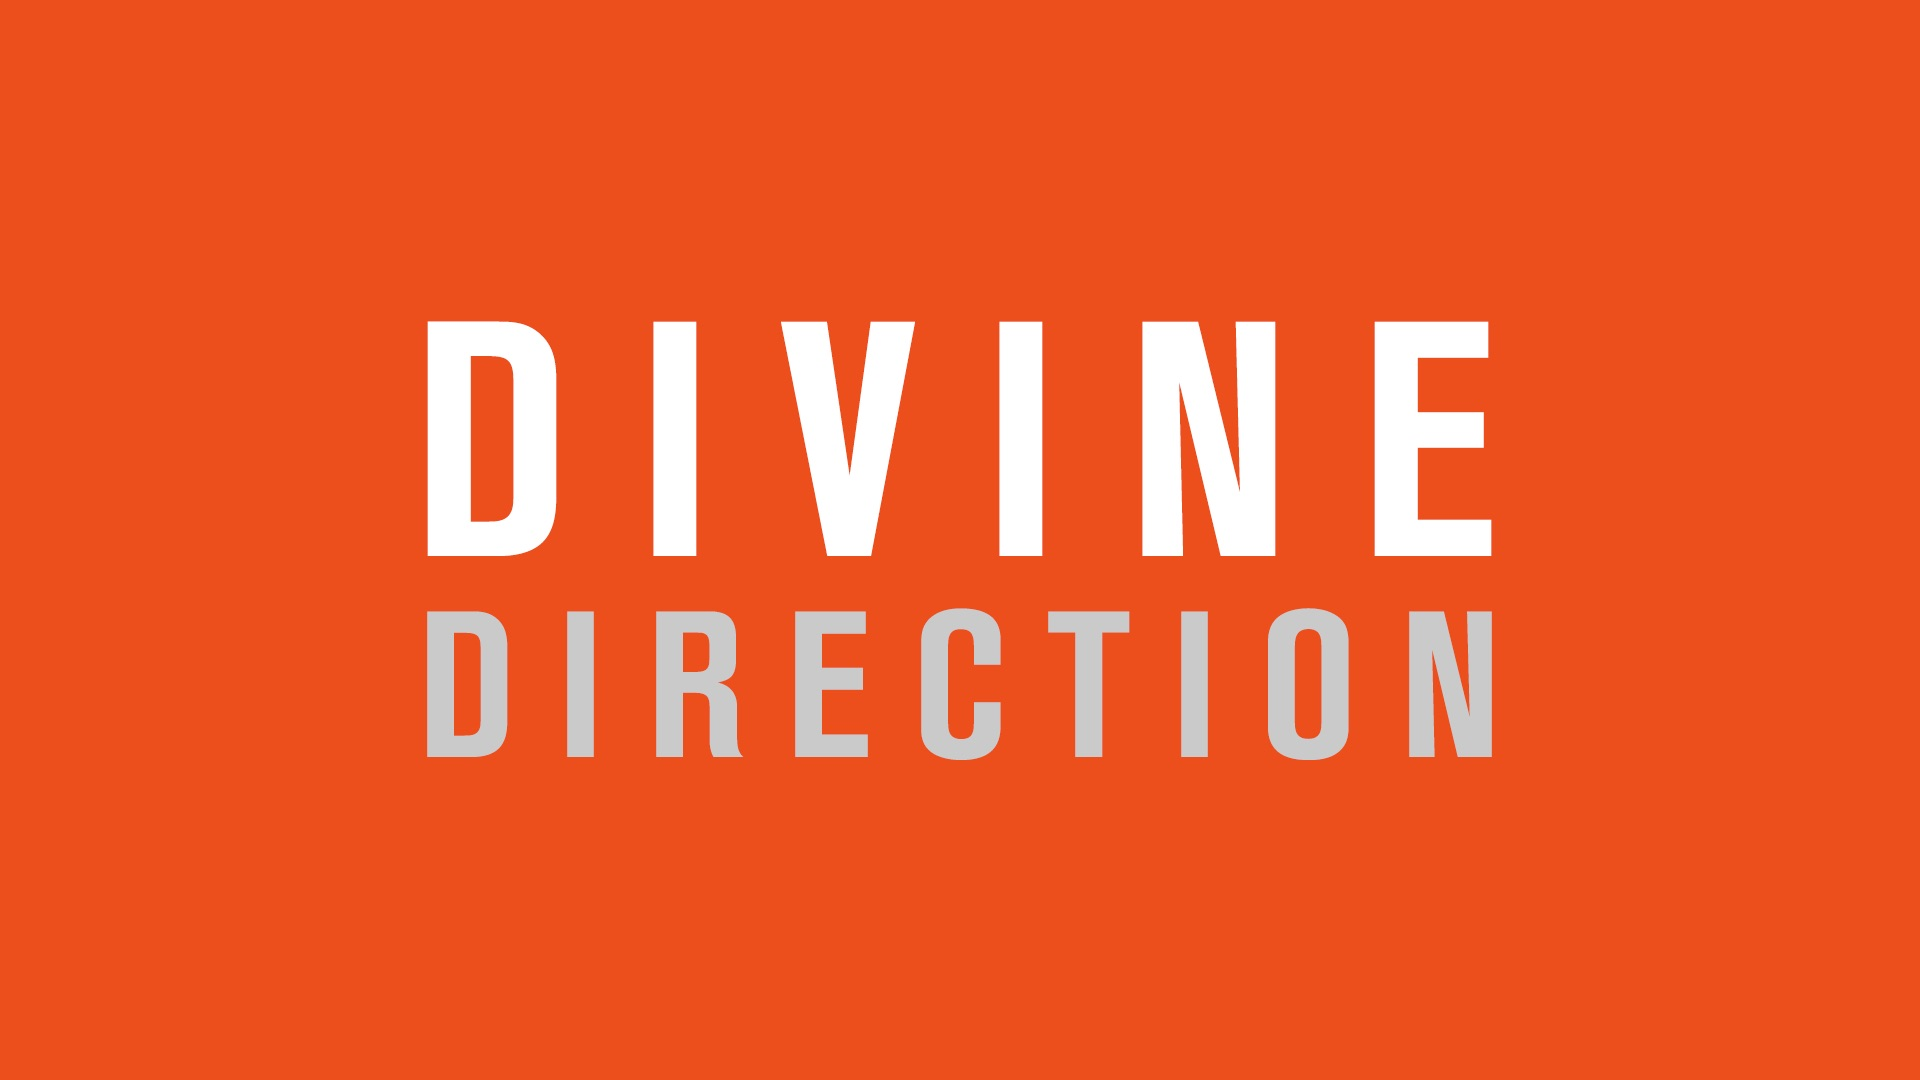 Devine Direction - Revive Christian Church